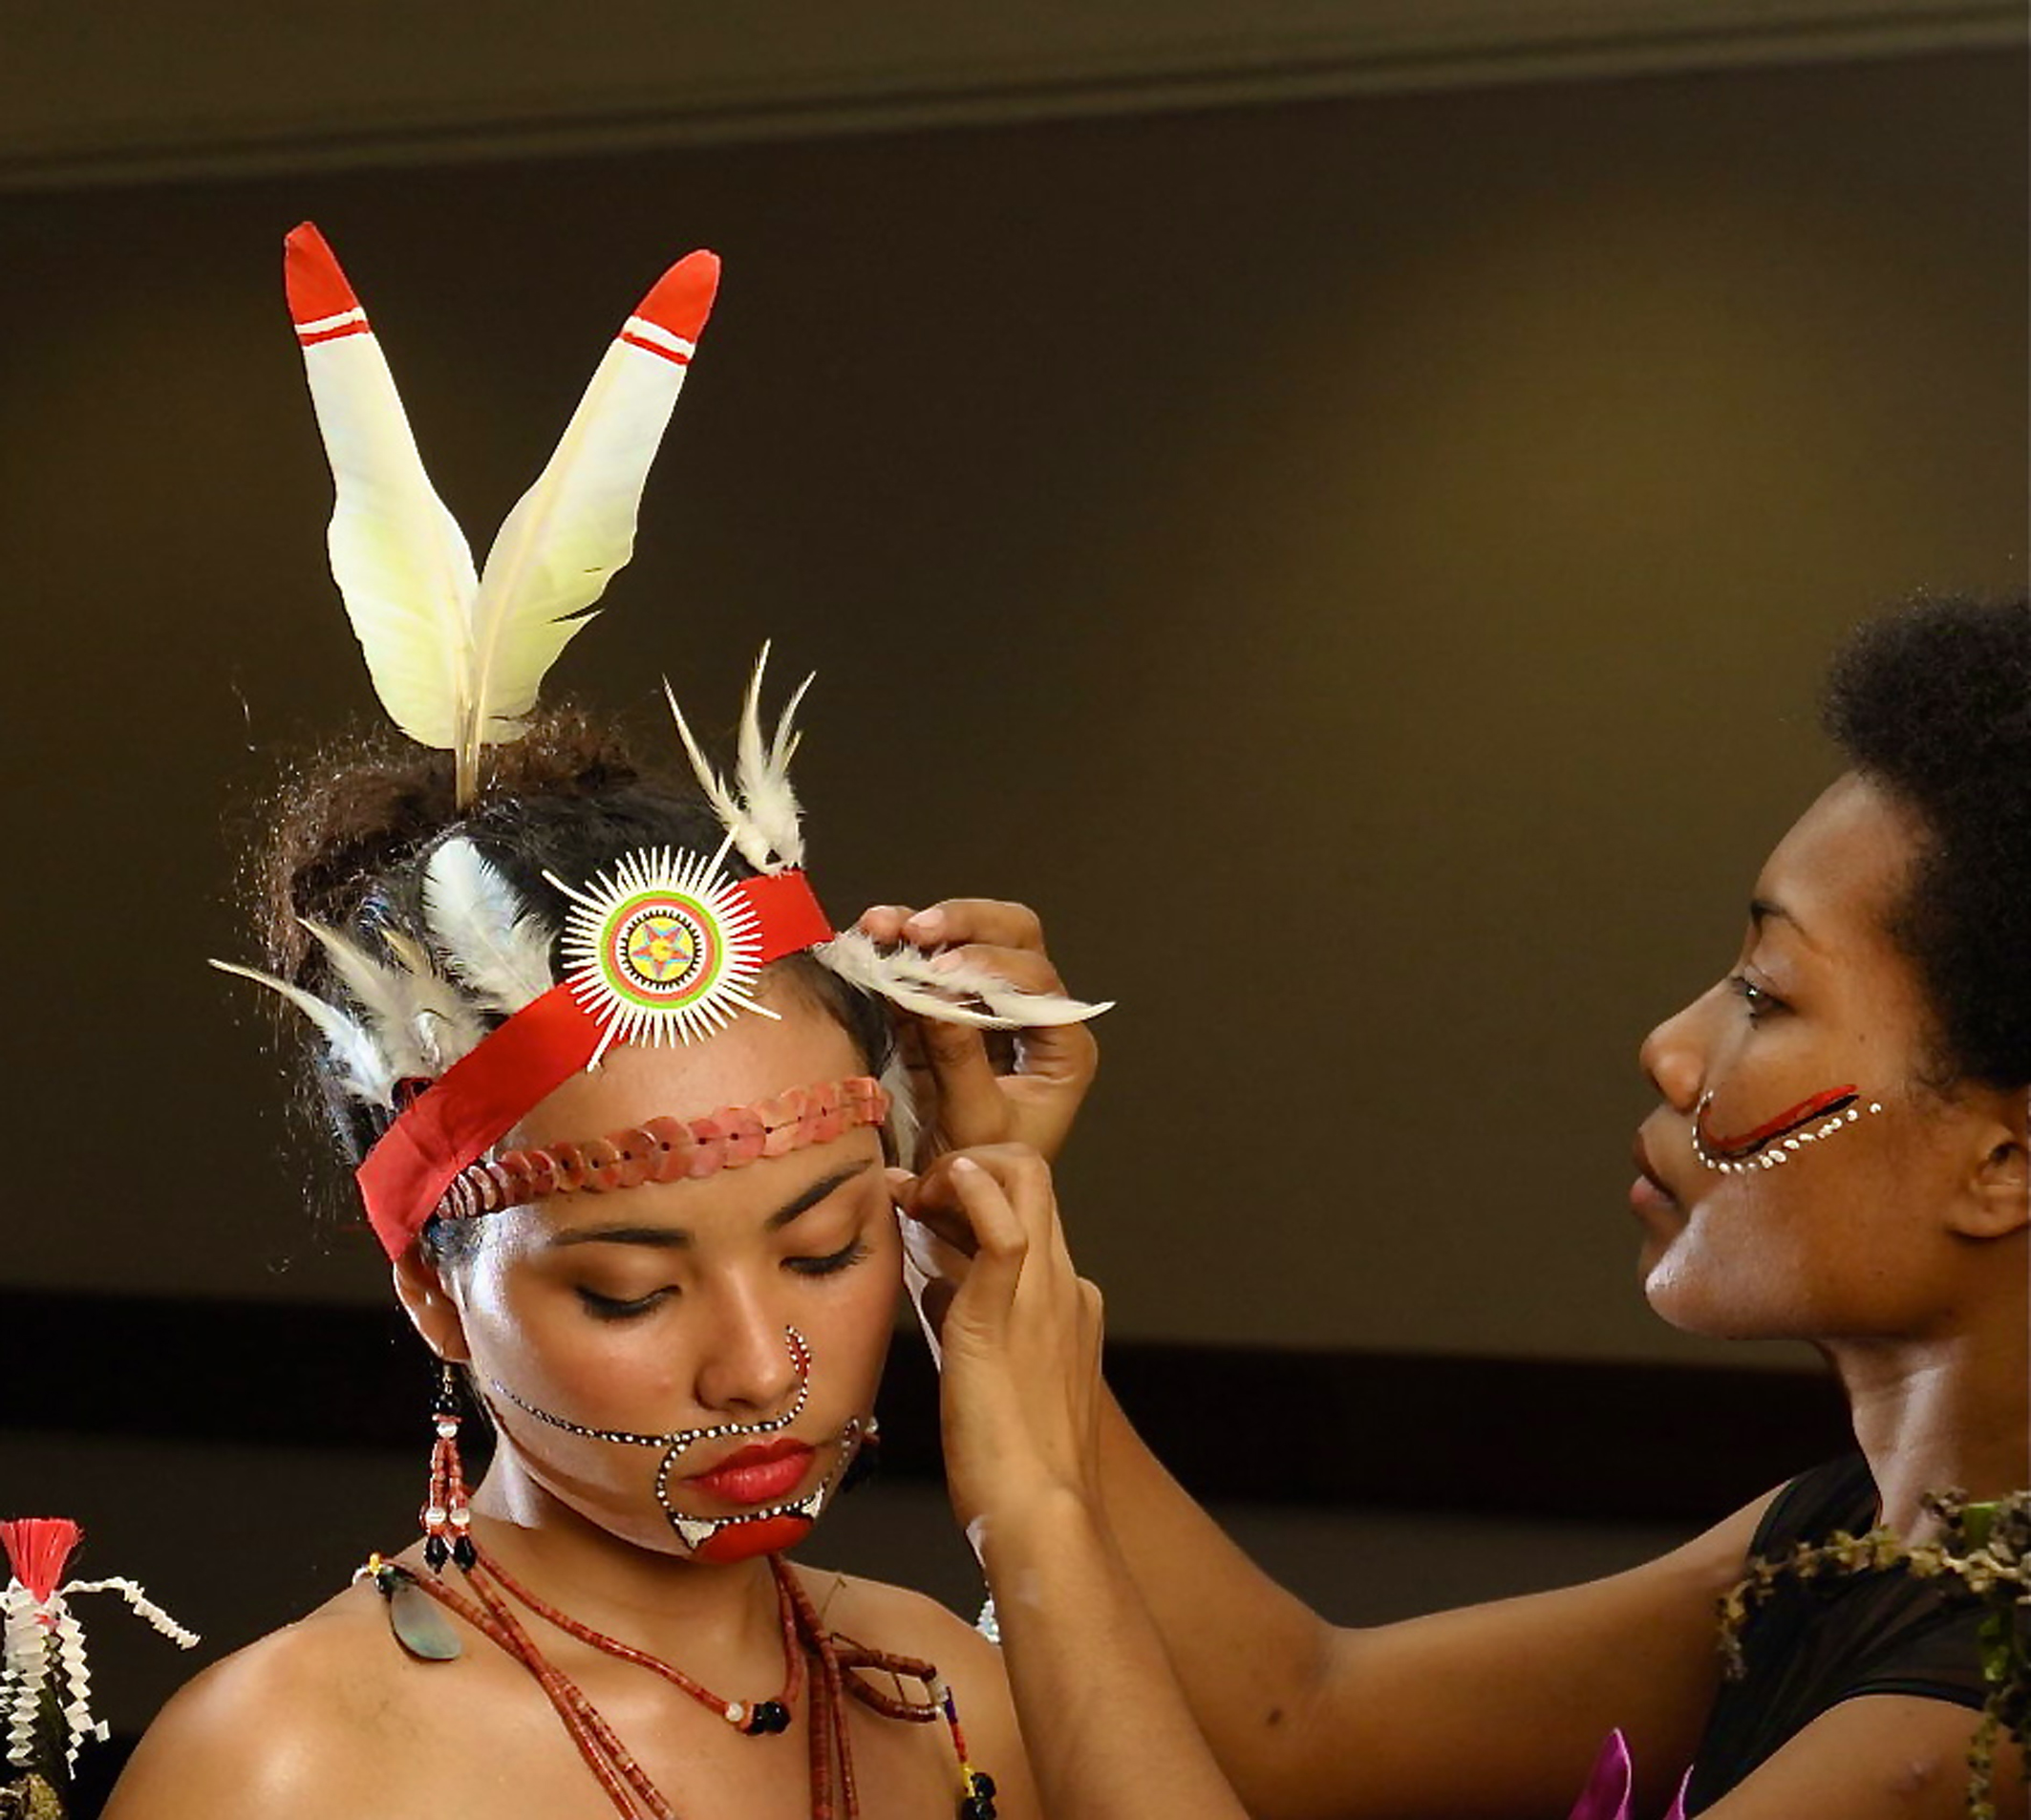 P&O Cruises Helps PNG Princess Find Her 'Voice'